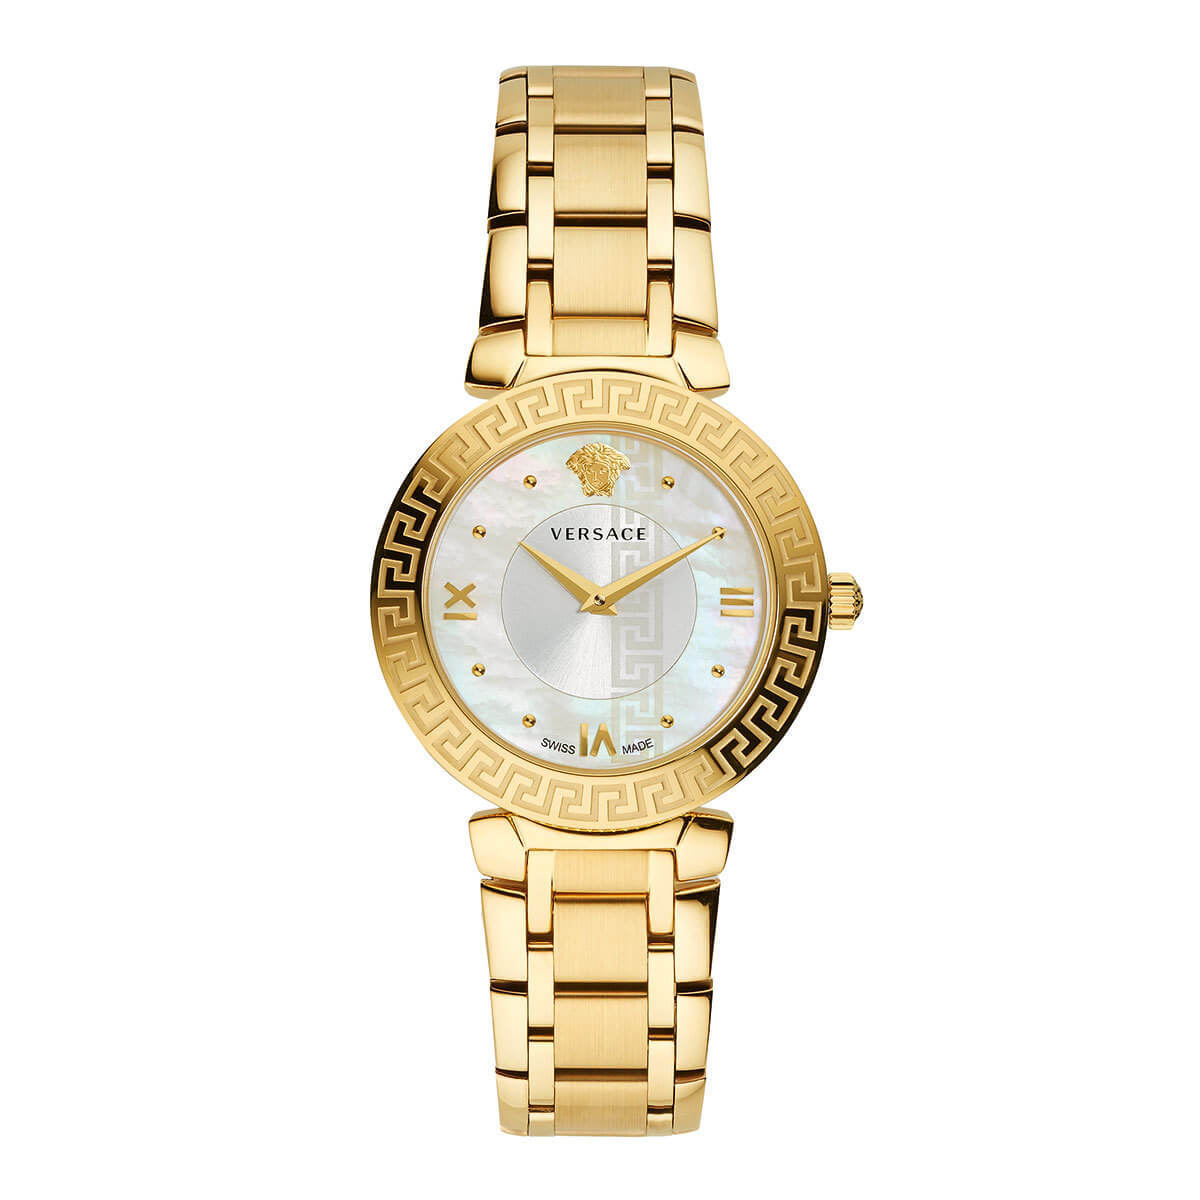 V1607-P0017_Daphnis_Watches_versace_1